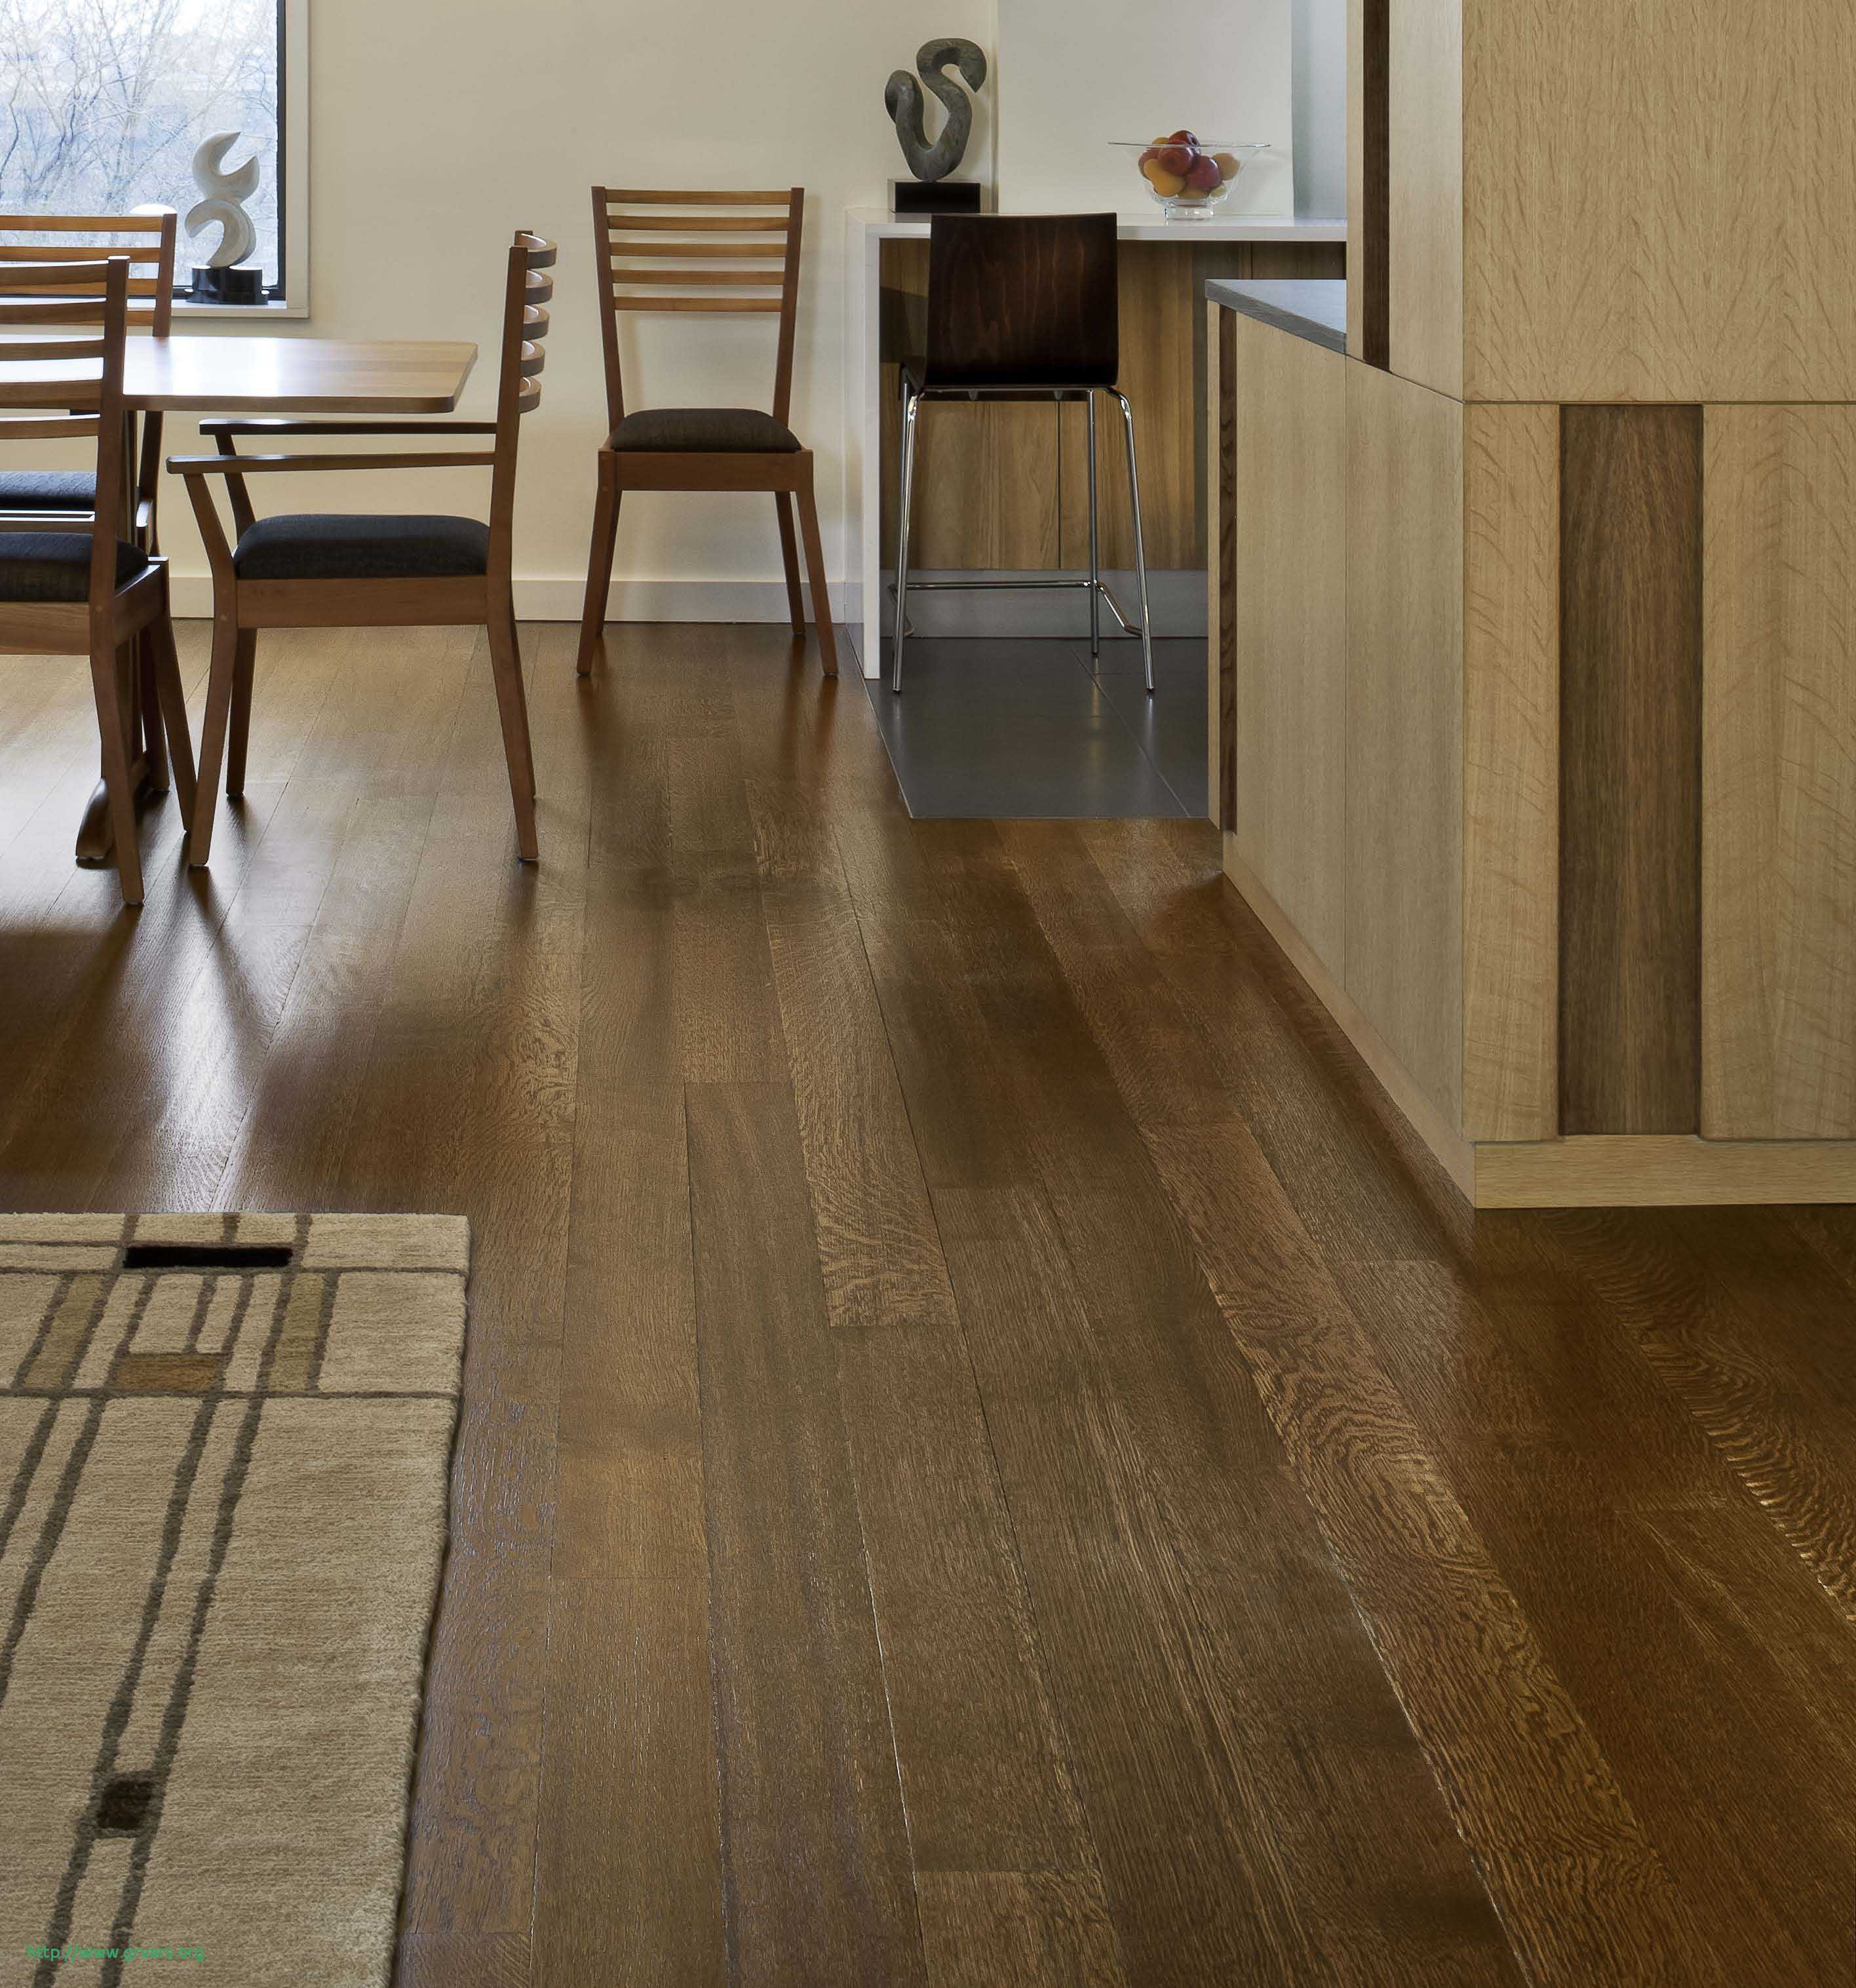 oak hardwood flooring reviews of 21 inspirant best prices for laminate wood flooring ideas blog within best prices for laminate wood flooring beau engaging discount hardwood flooring 5 where to buy inspirational